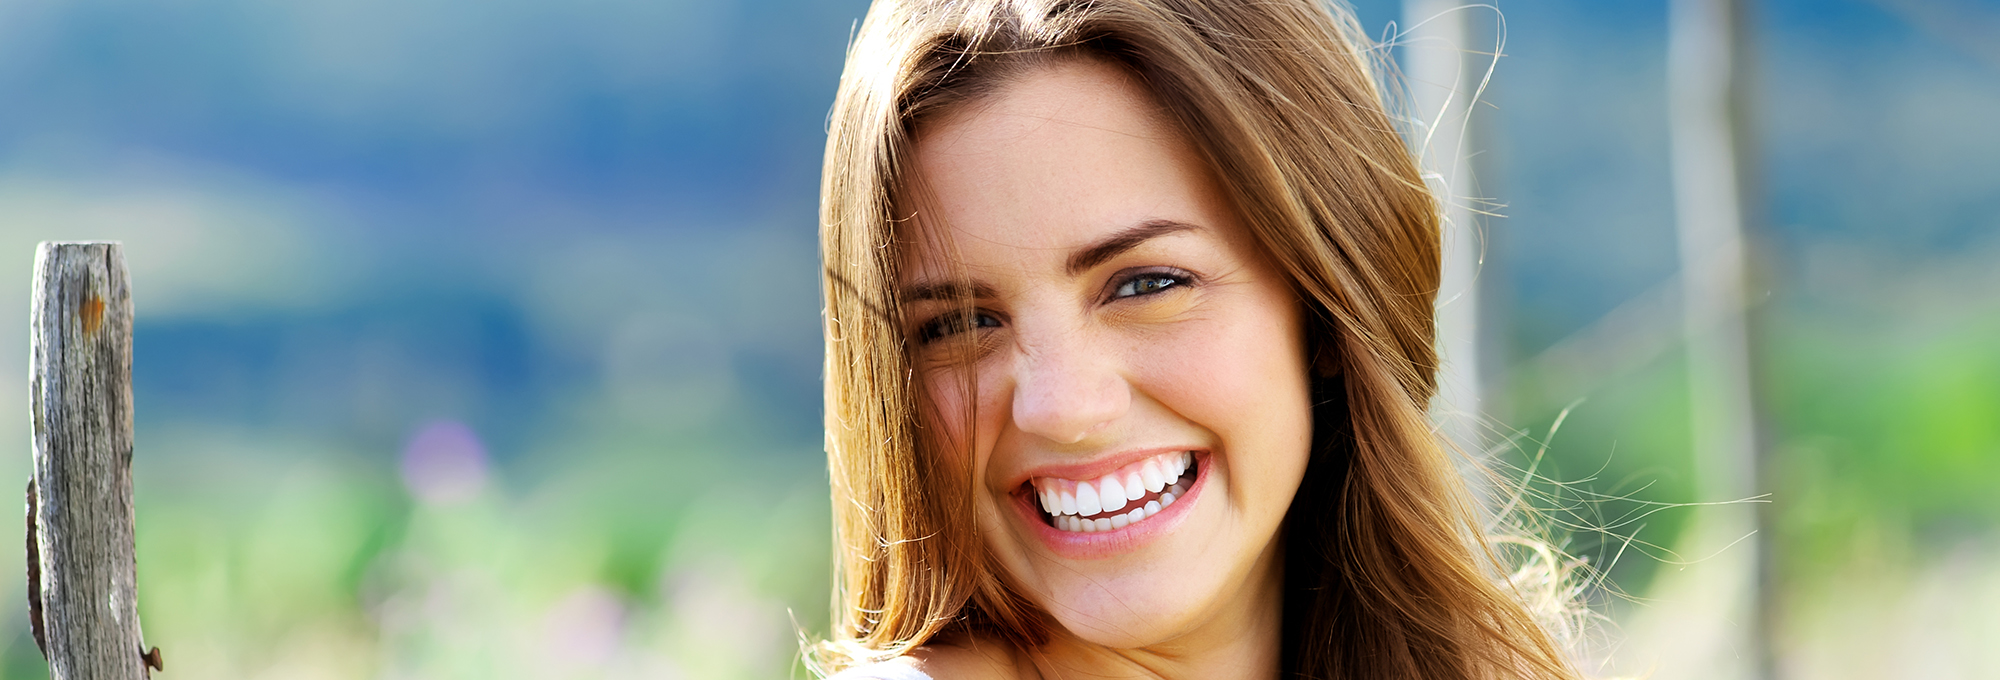 Best Team on Your Side   Farley Orthodontics    Request your consultation!